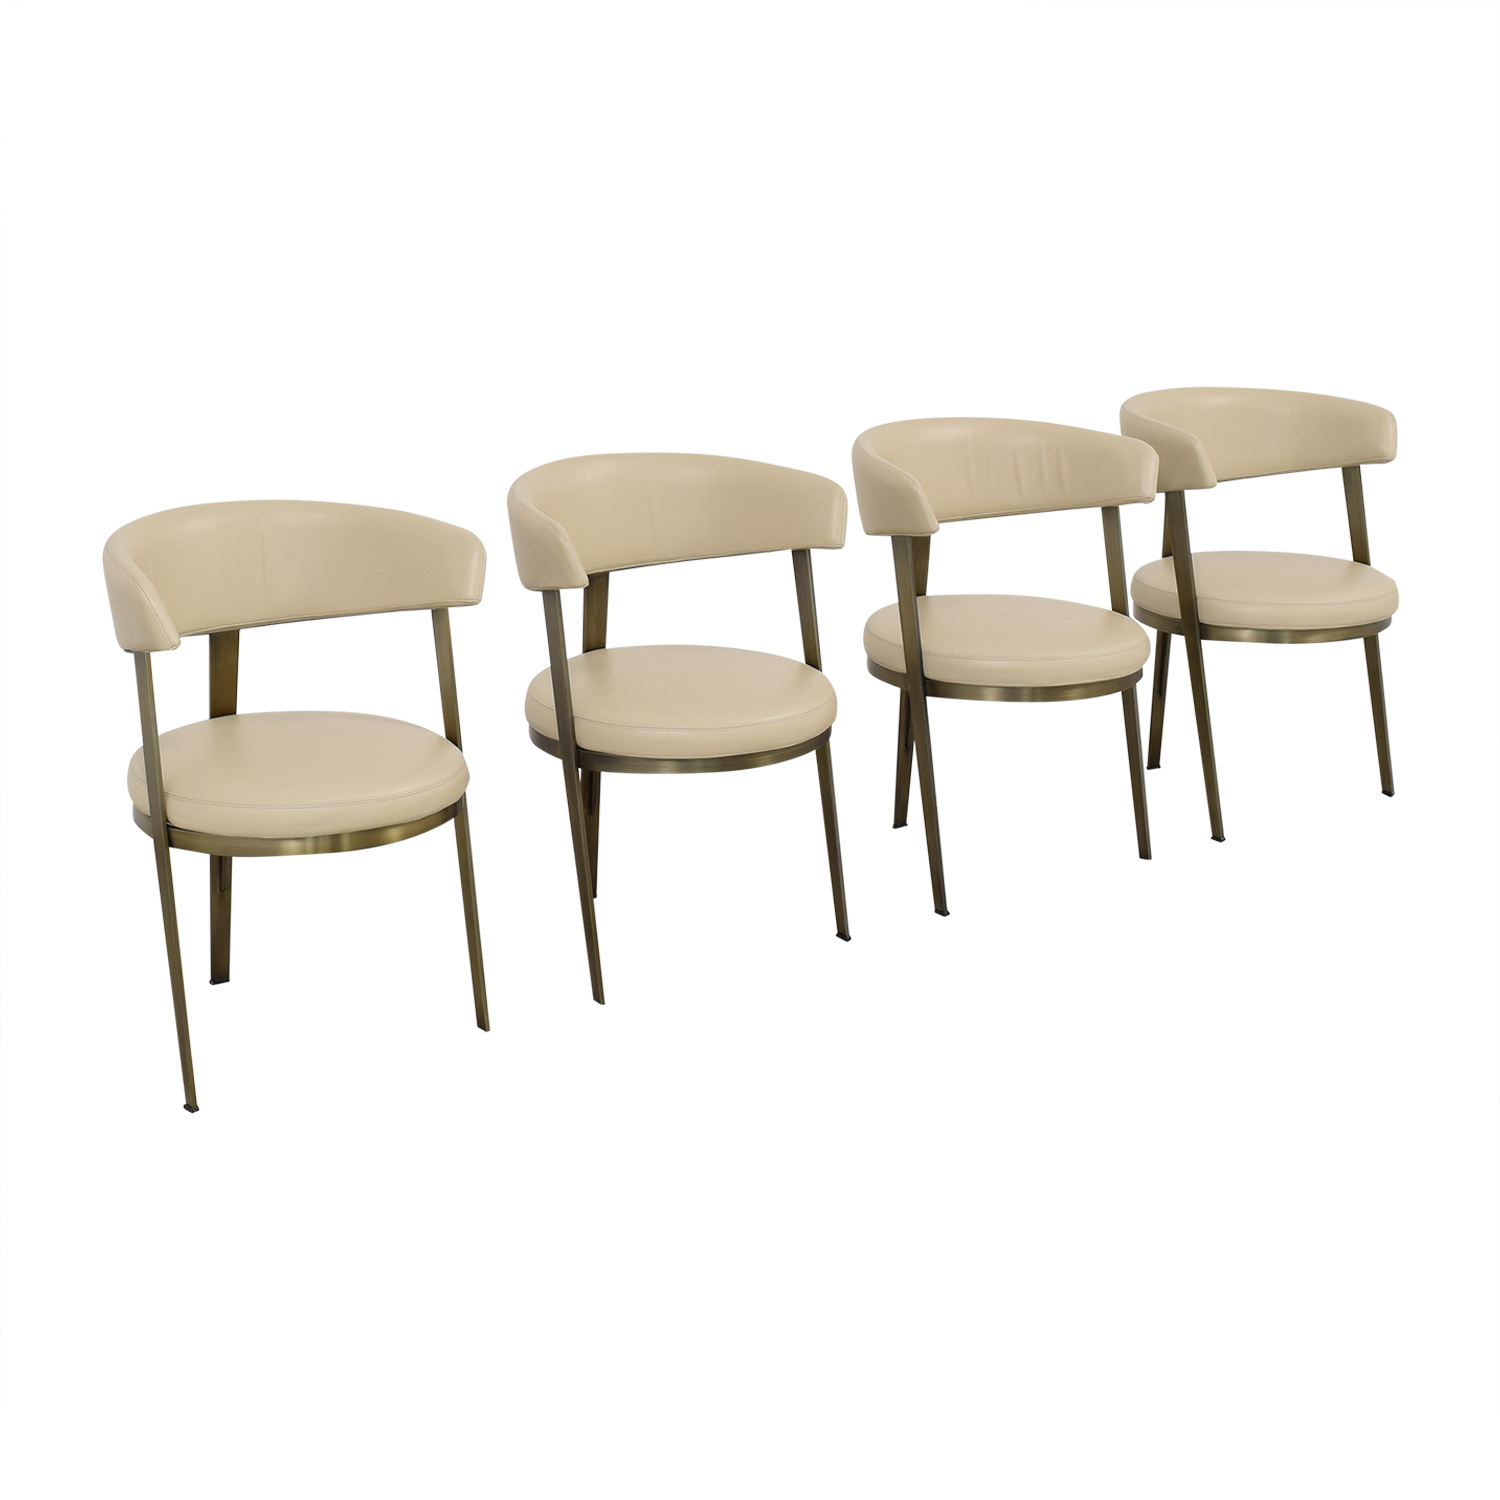 Interlude Home Interlude Home Dining Chairs Dining Chairs